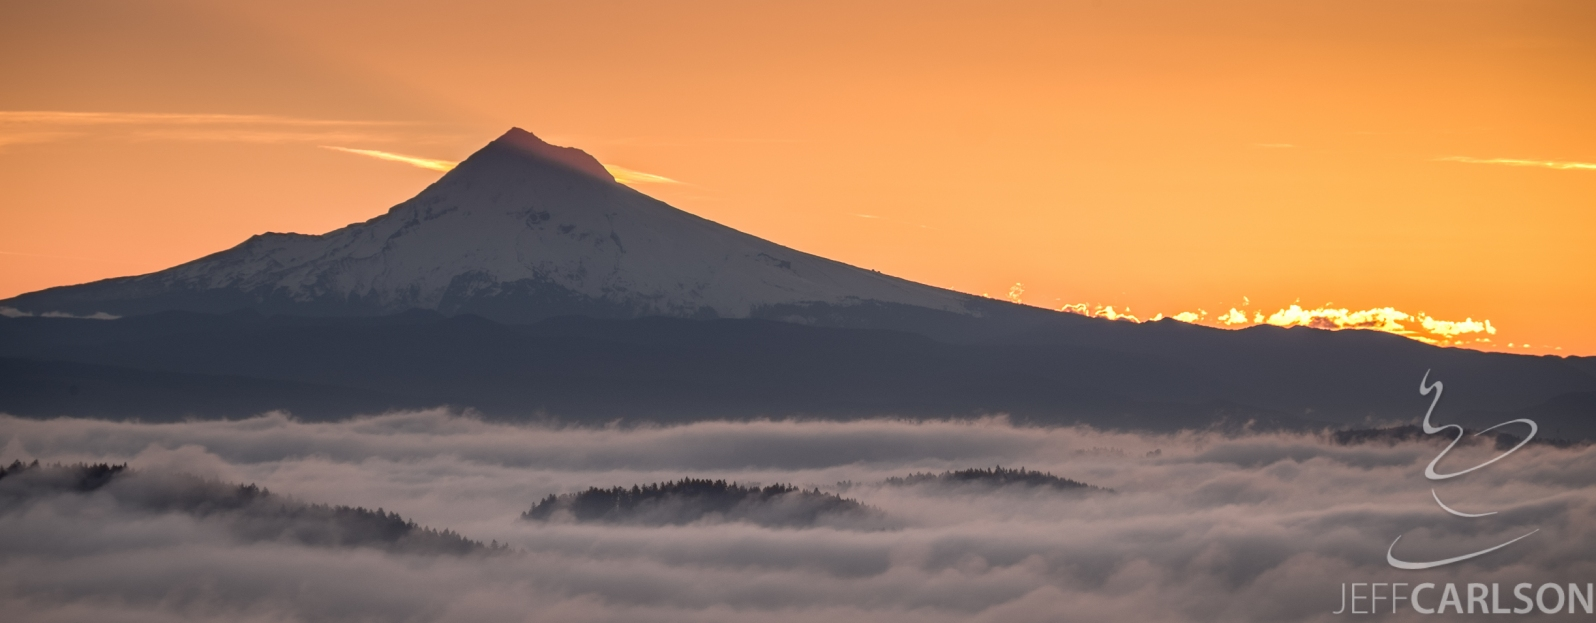 Mount Hood sunrise captured from Pittock Mansion, Portland, Oregon.